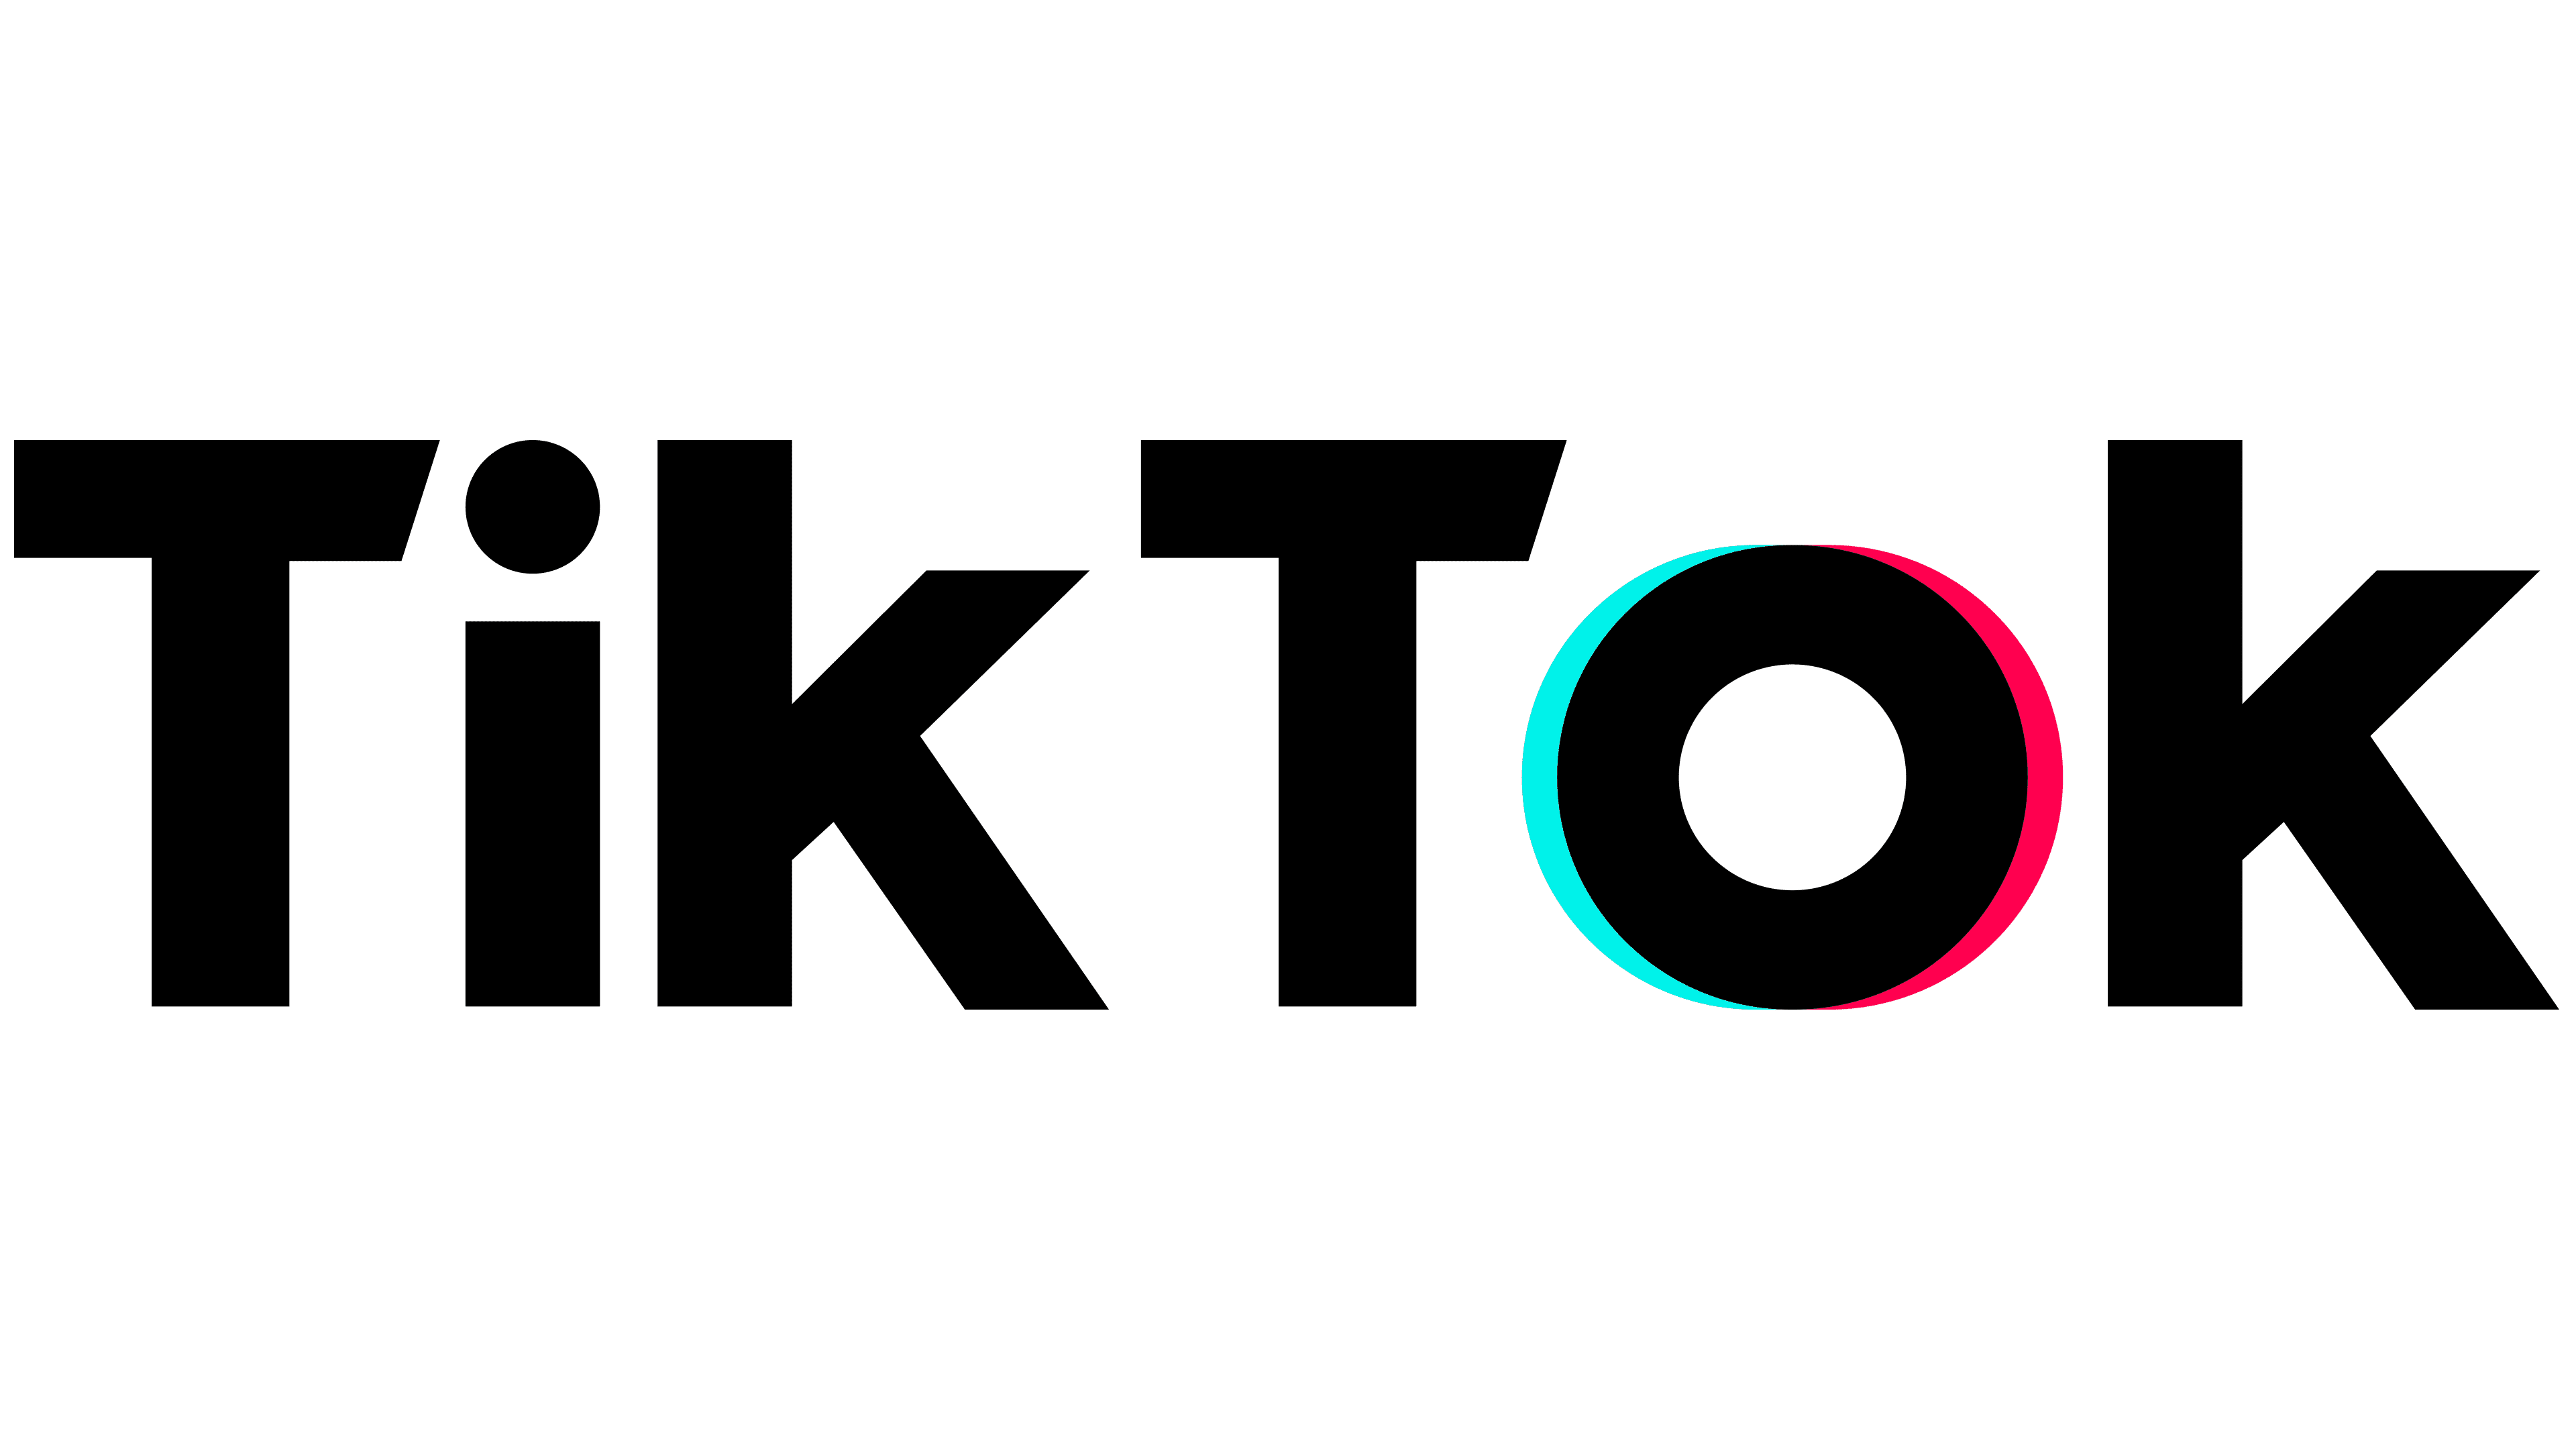 Tiktok Logo The Most Famous Brands And Company Logos In The World Create logos for your business design your brand easy & quick the #1 logo creators. tiktok logo the most famous brands